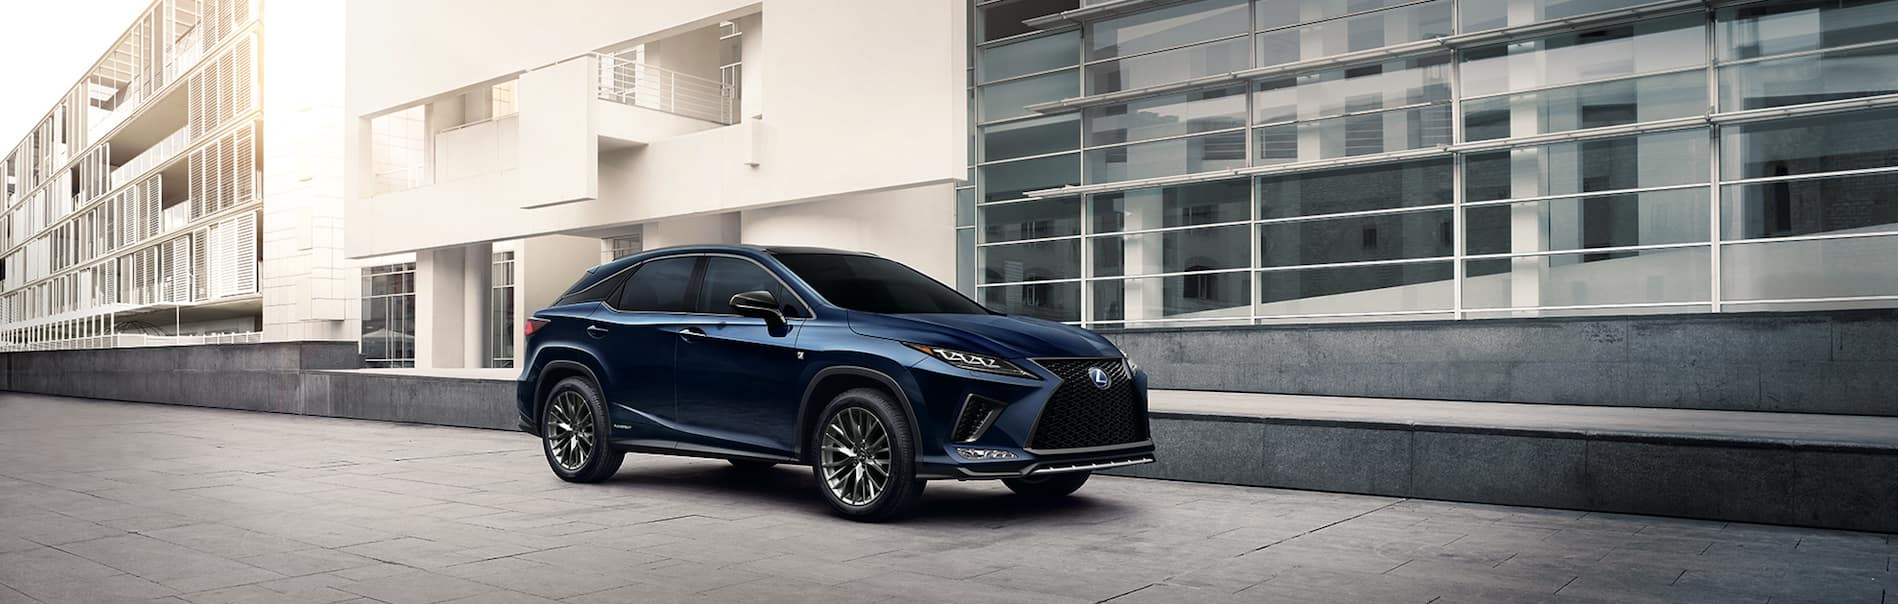 Lexus Dealers In Ohio >> Meade Lexus Of Lakeside Lexus Dealer In Utica Mi